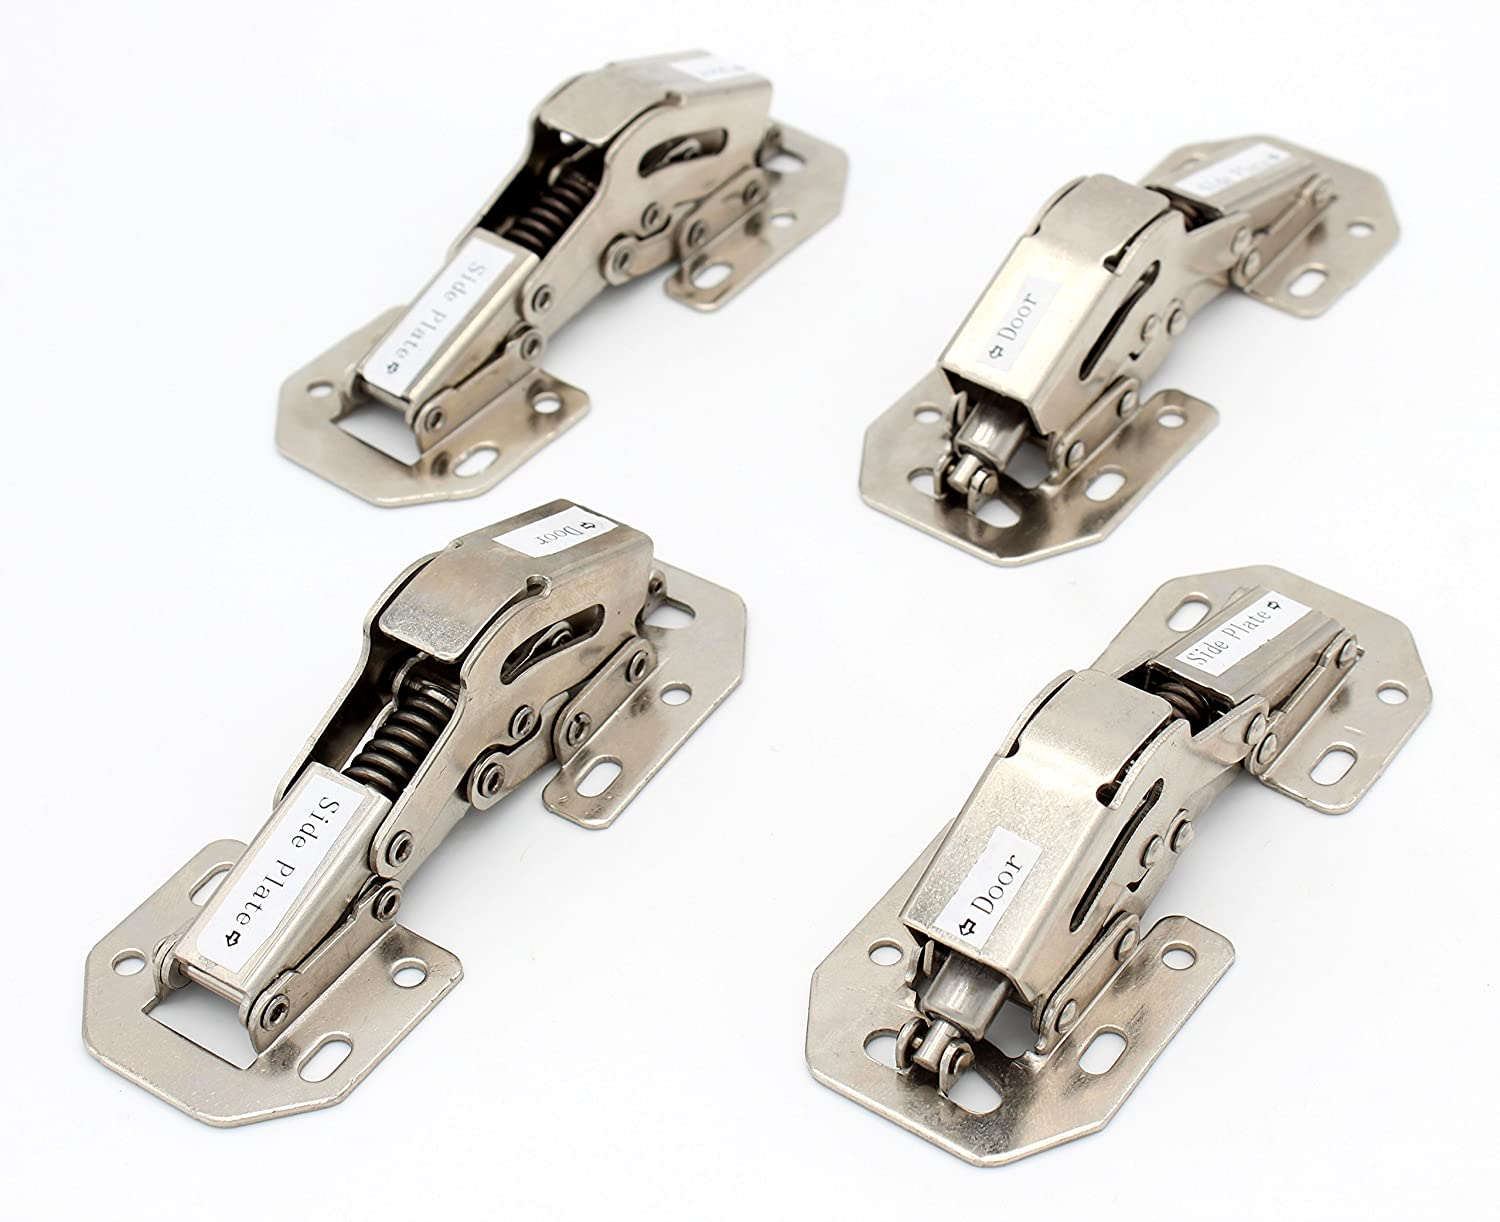 """Tueascallk 4.4"""" x 1.7"""" No Need to Grooving, Easy to Install Cabinet Door Soft Close Damping Hinges, Nickel, 4 Packs"""